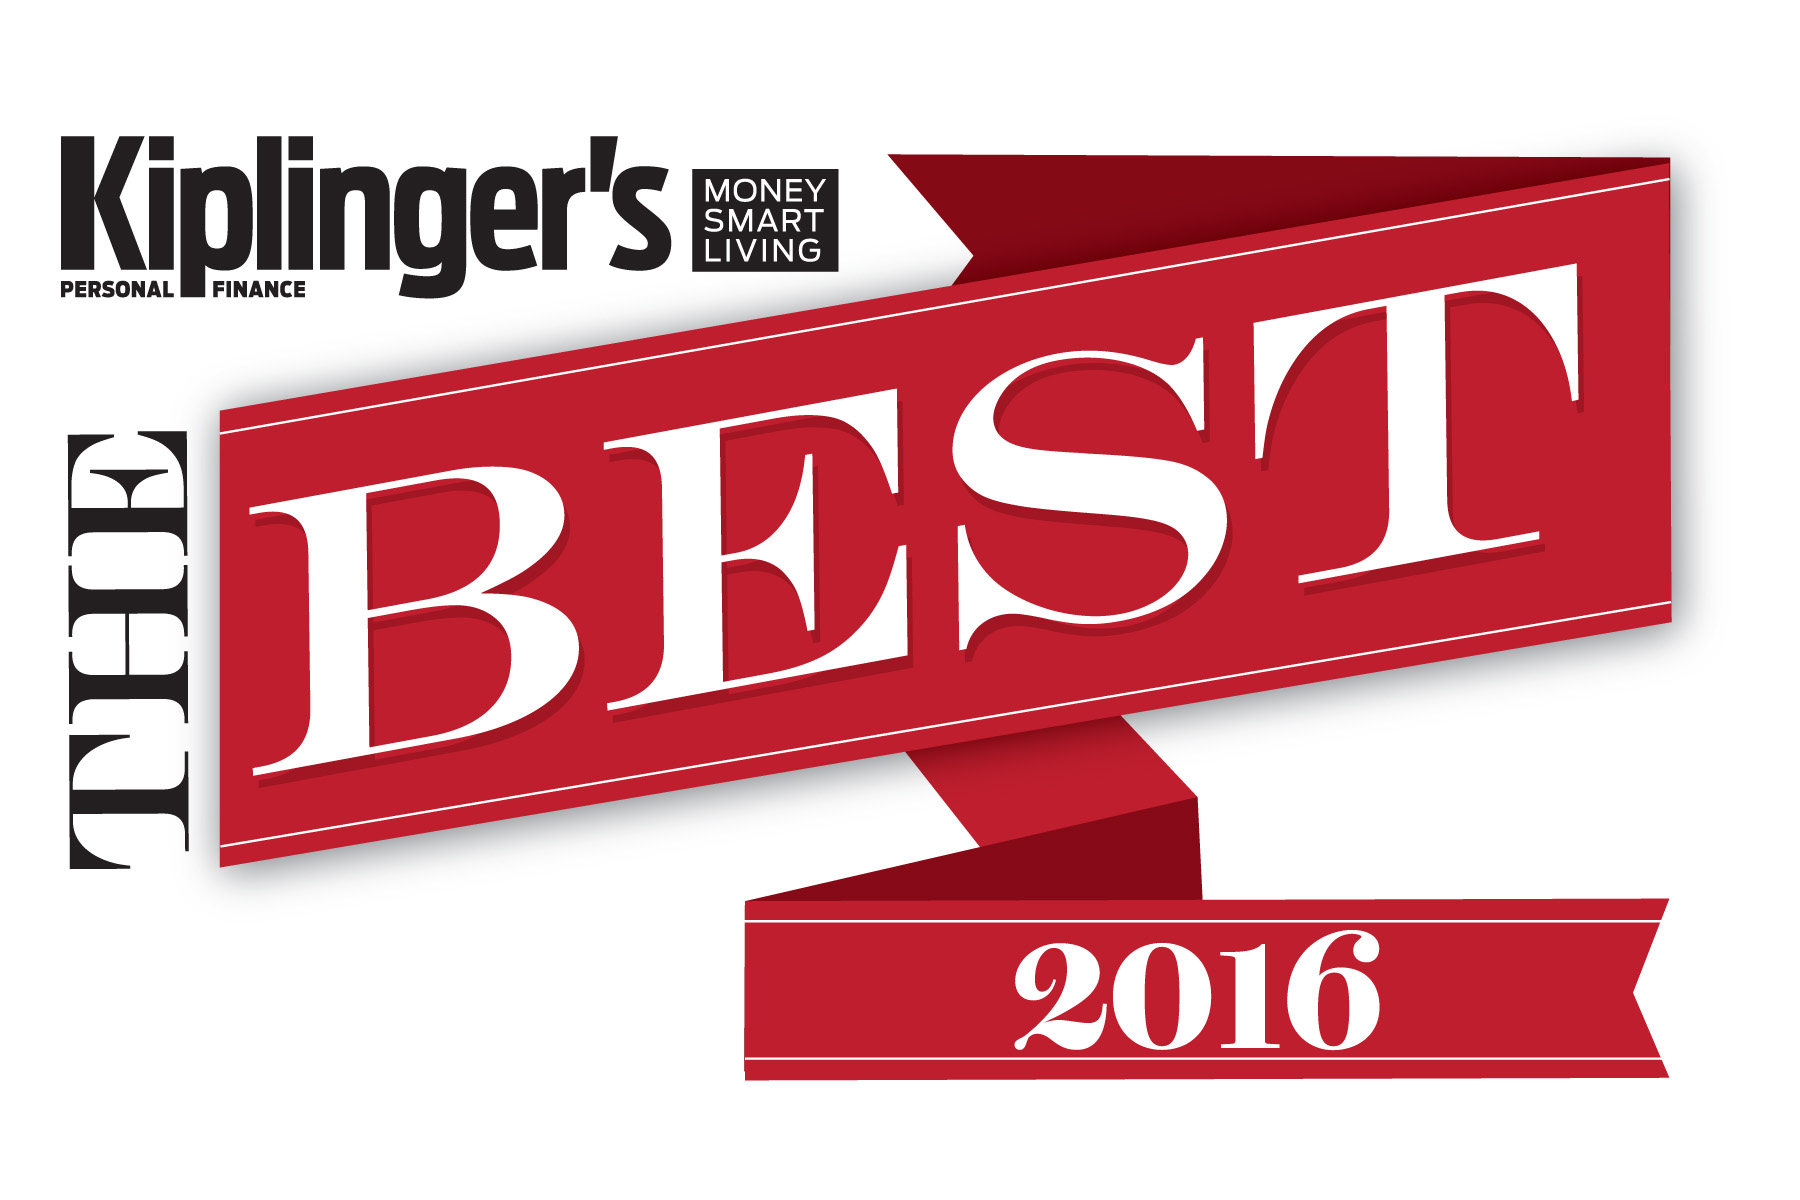 Alliant has the best deals in banking of 2016 according to Kiplinger